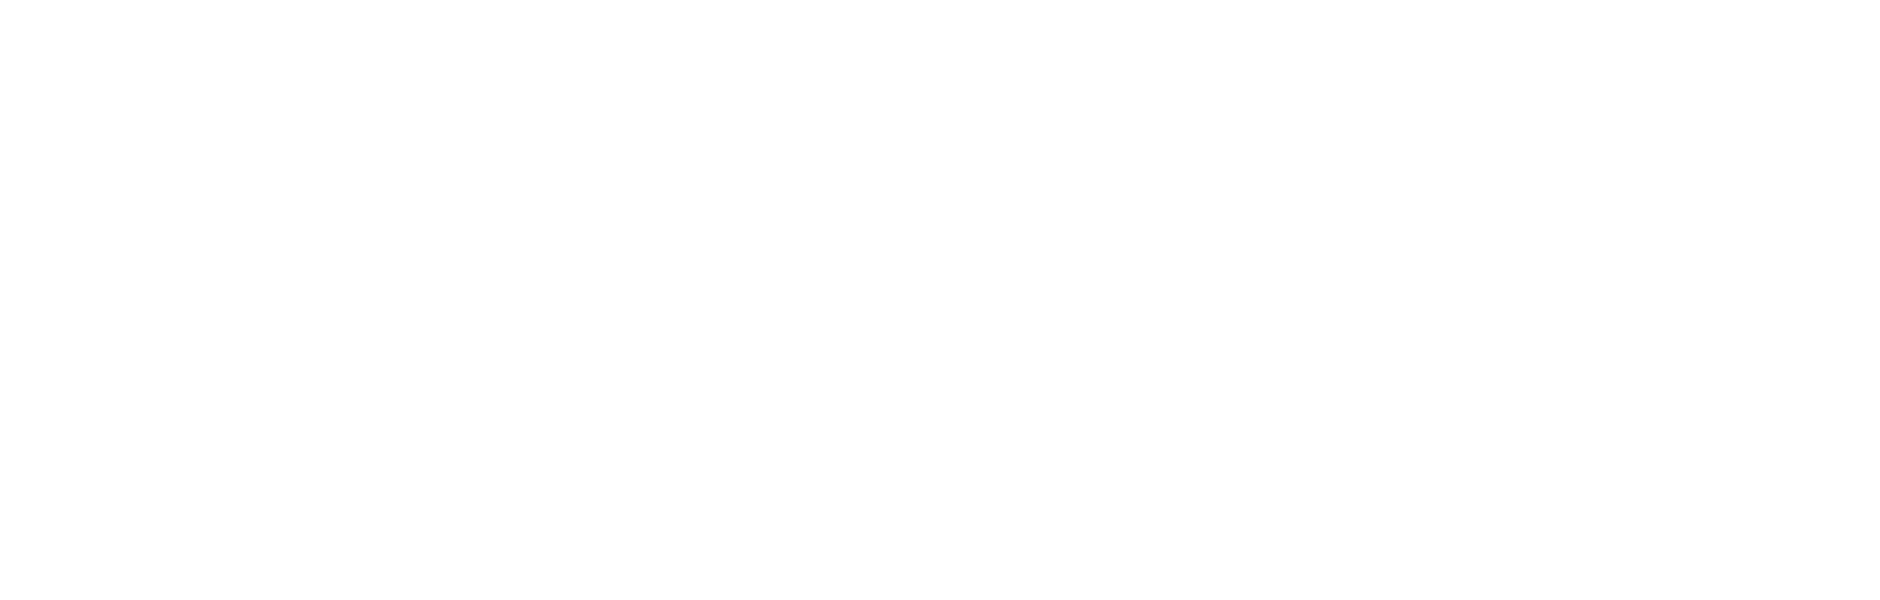 jobs and skills decorative banner